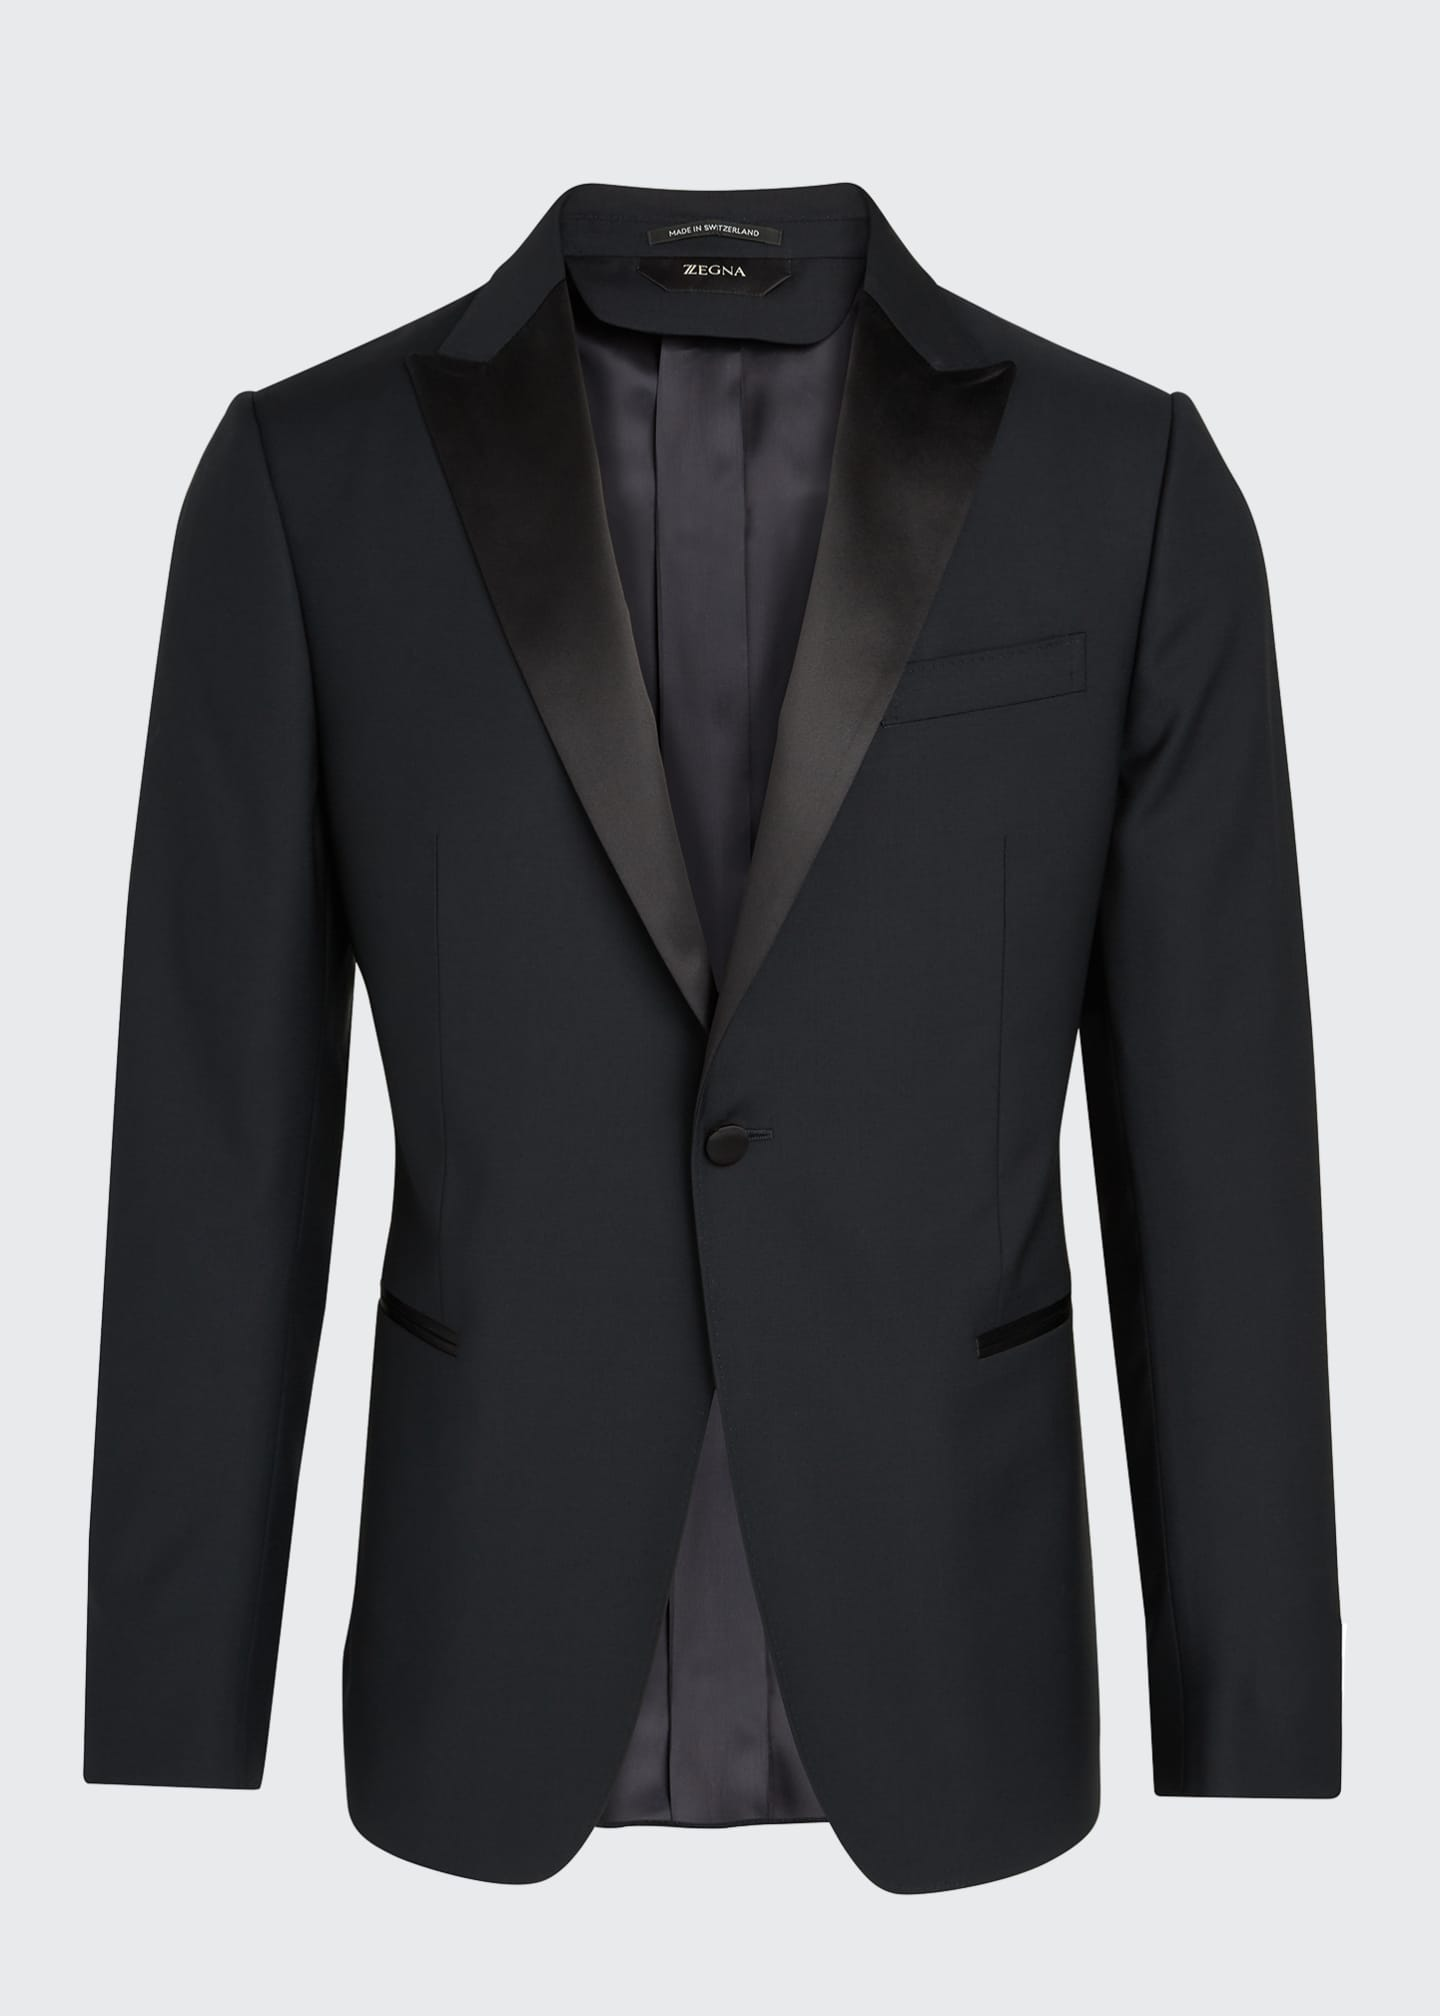 Image 5 of 5: Men's Satin-Trim Two-Piece Tuxedo Suit